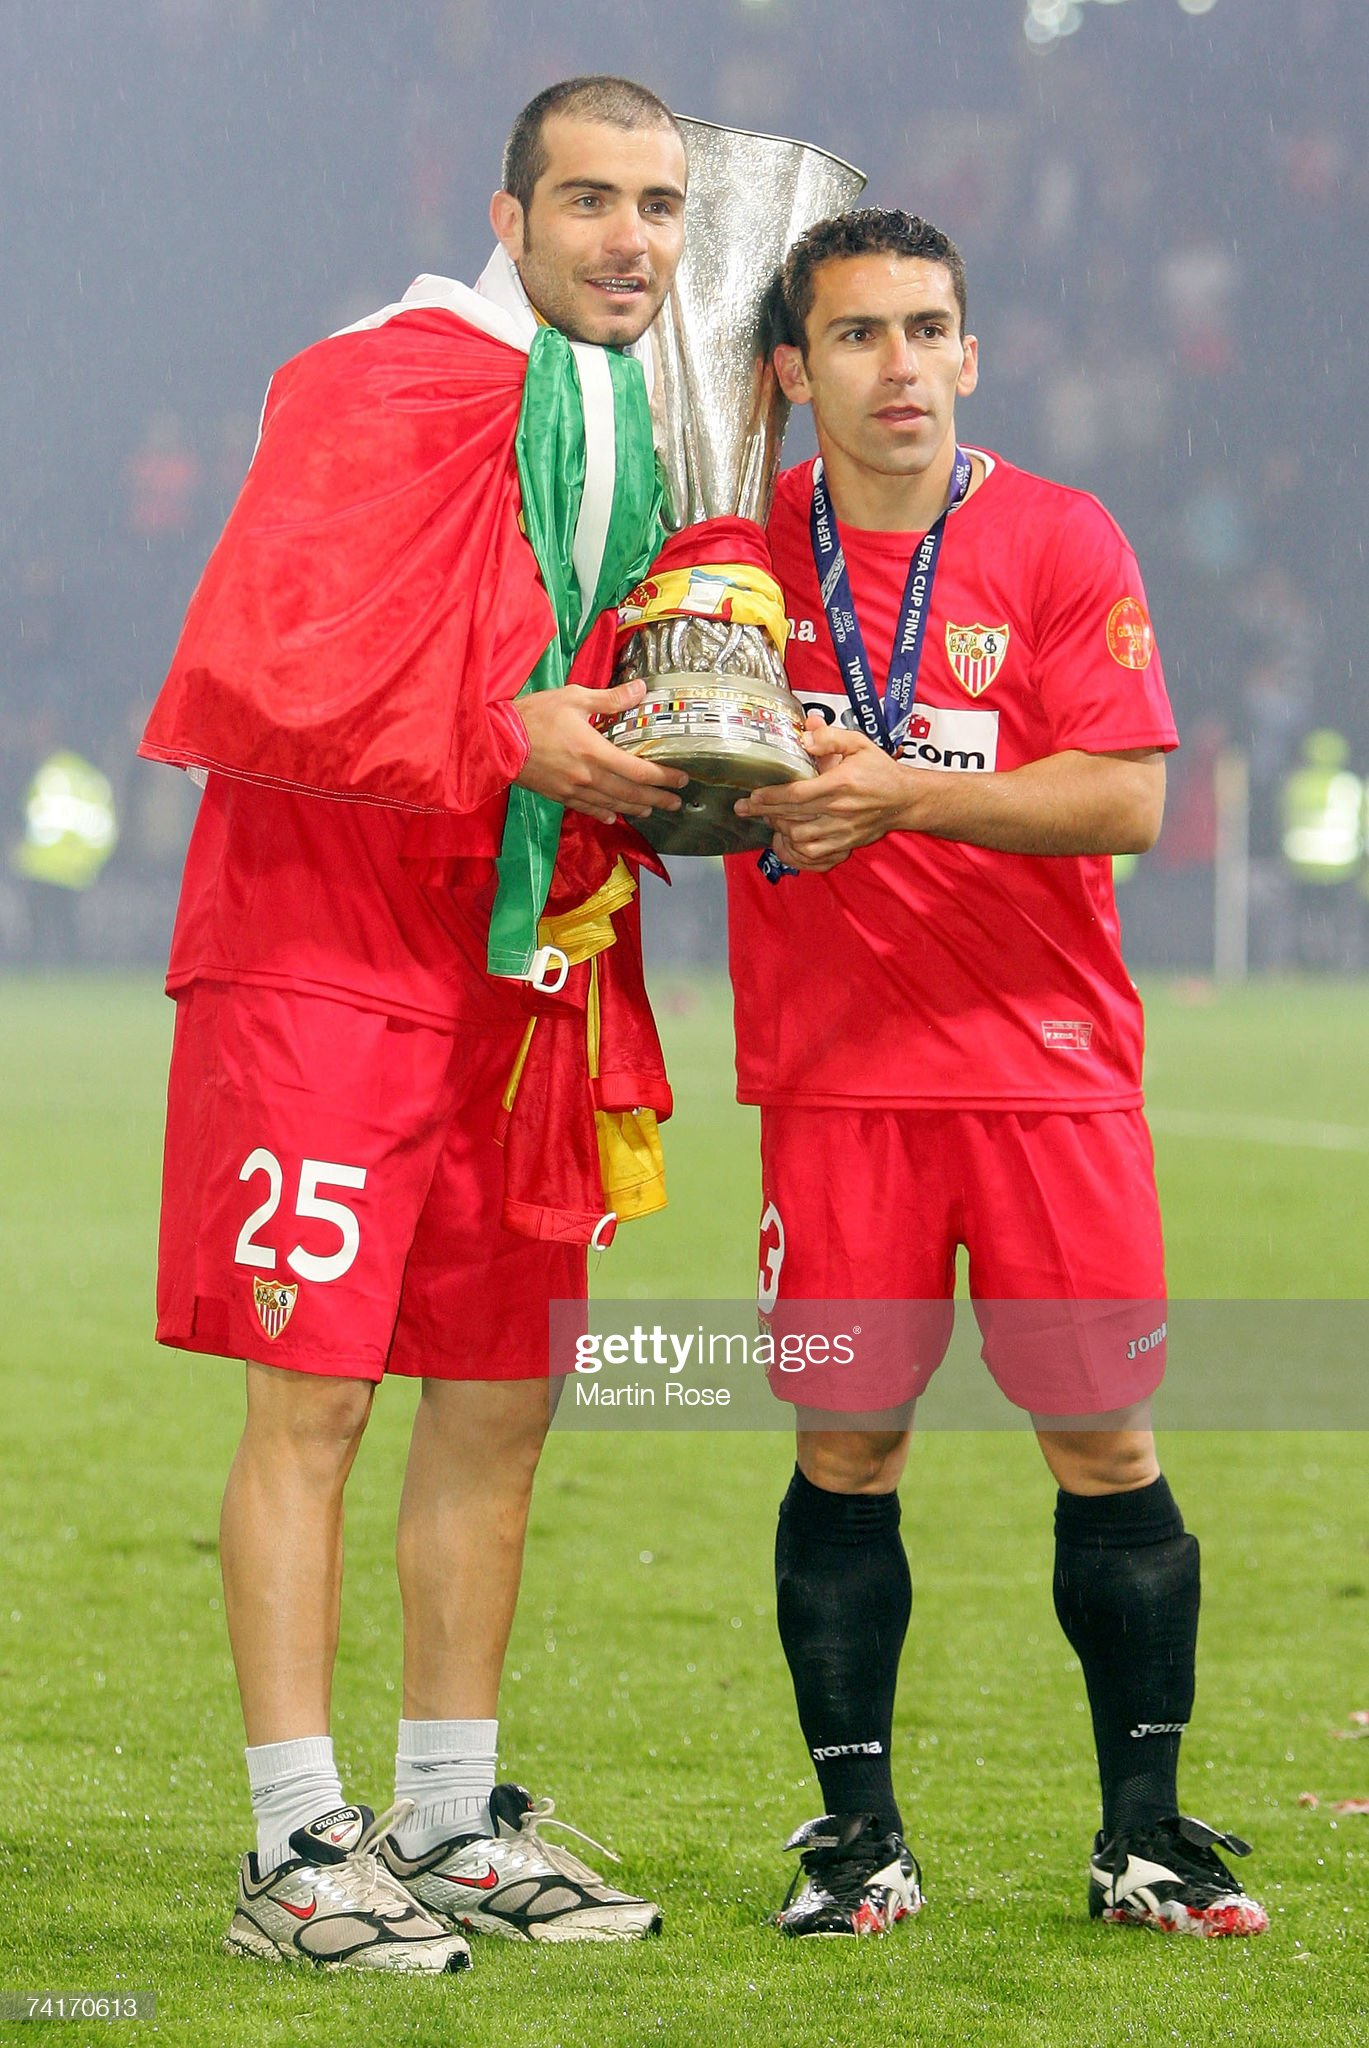 ¿Cuánto mide David Castedo? Enzo-maresca-and-david-castedo-of-sevilla-pose-with-the-trophy-after-picture-id74170613?s=2048x2048